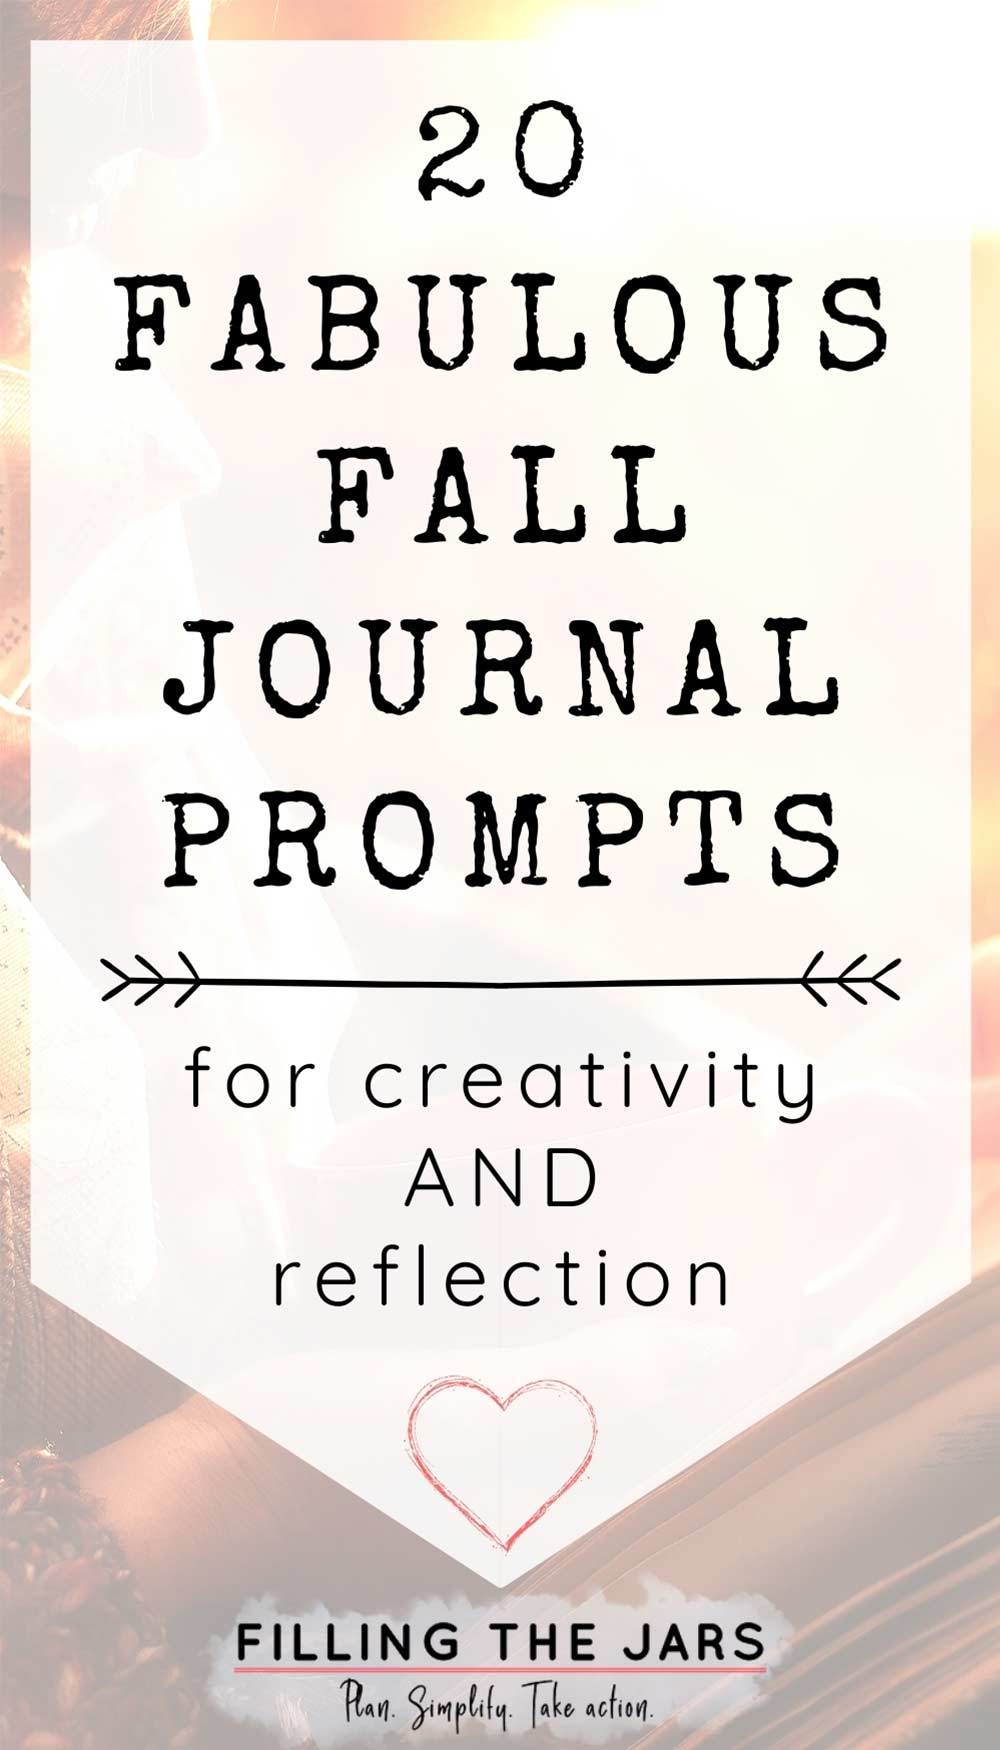 Text fabulous fall journal prompts on white background over image of woman in patterned scarf and sweater sitting in autumn sunlight while holding coffee mug and reading through a fall journal.